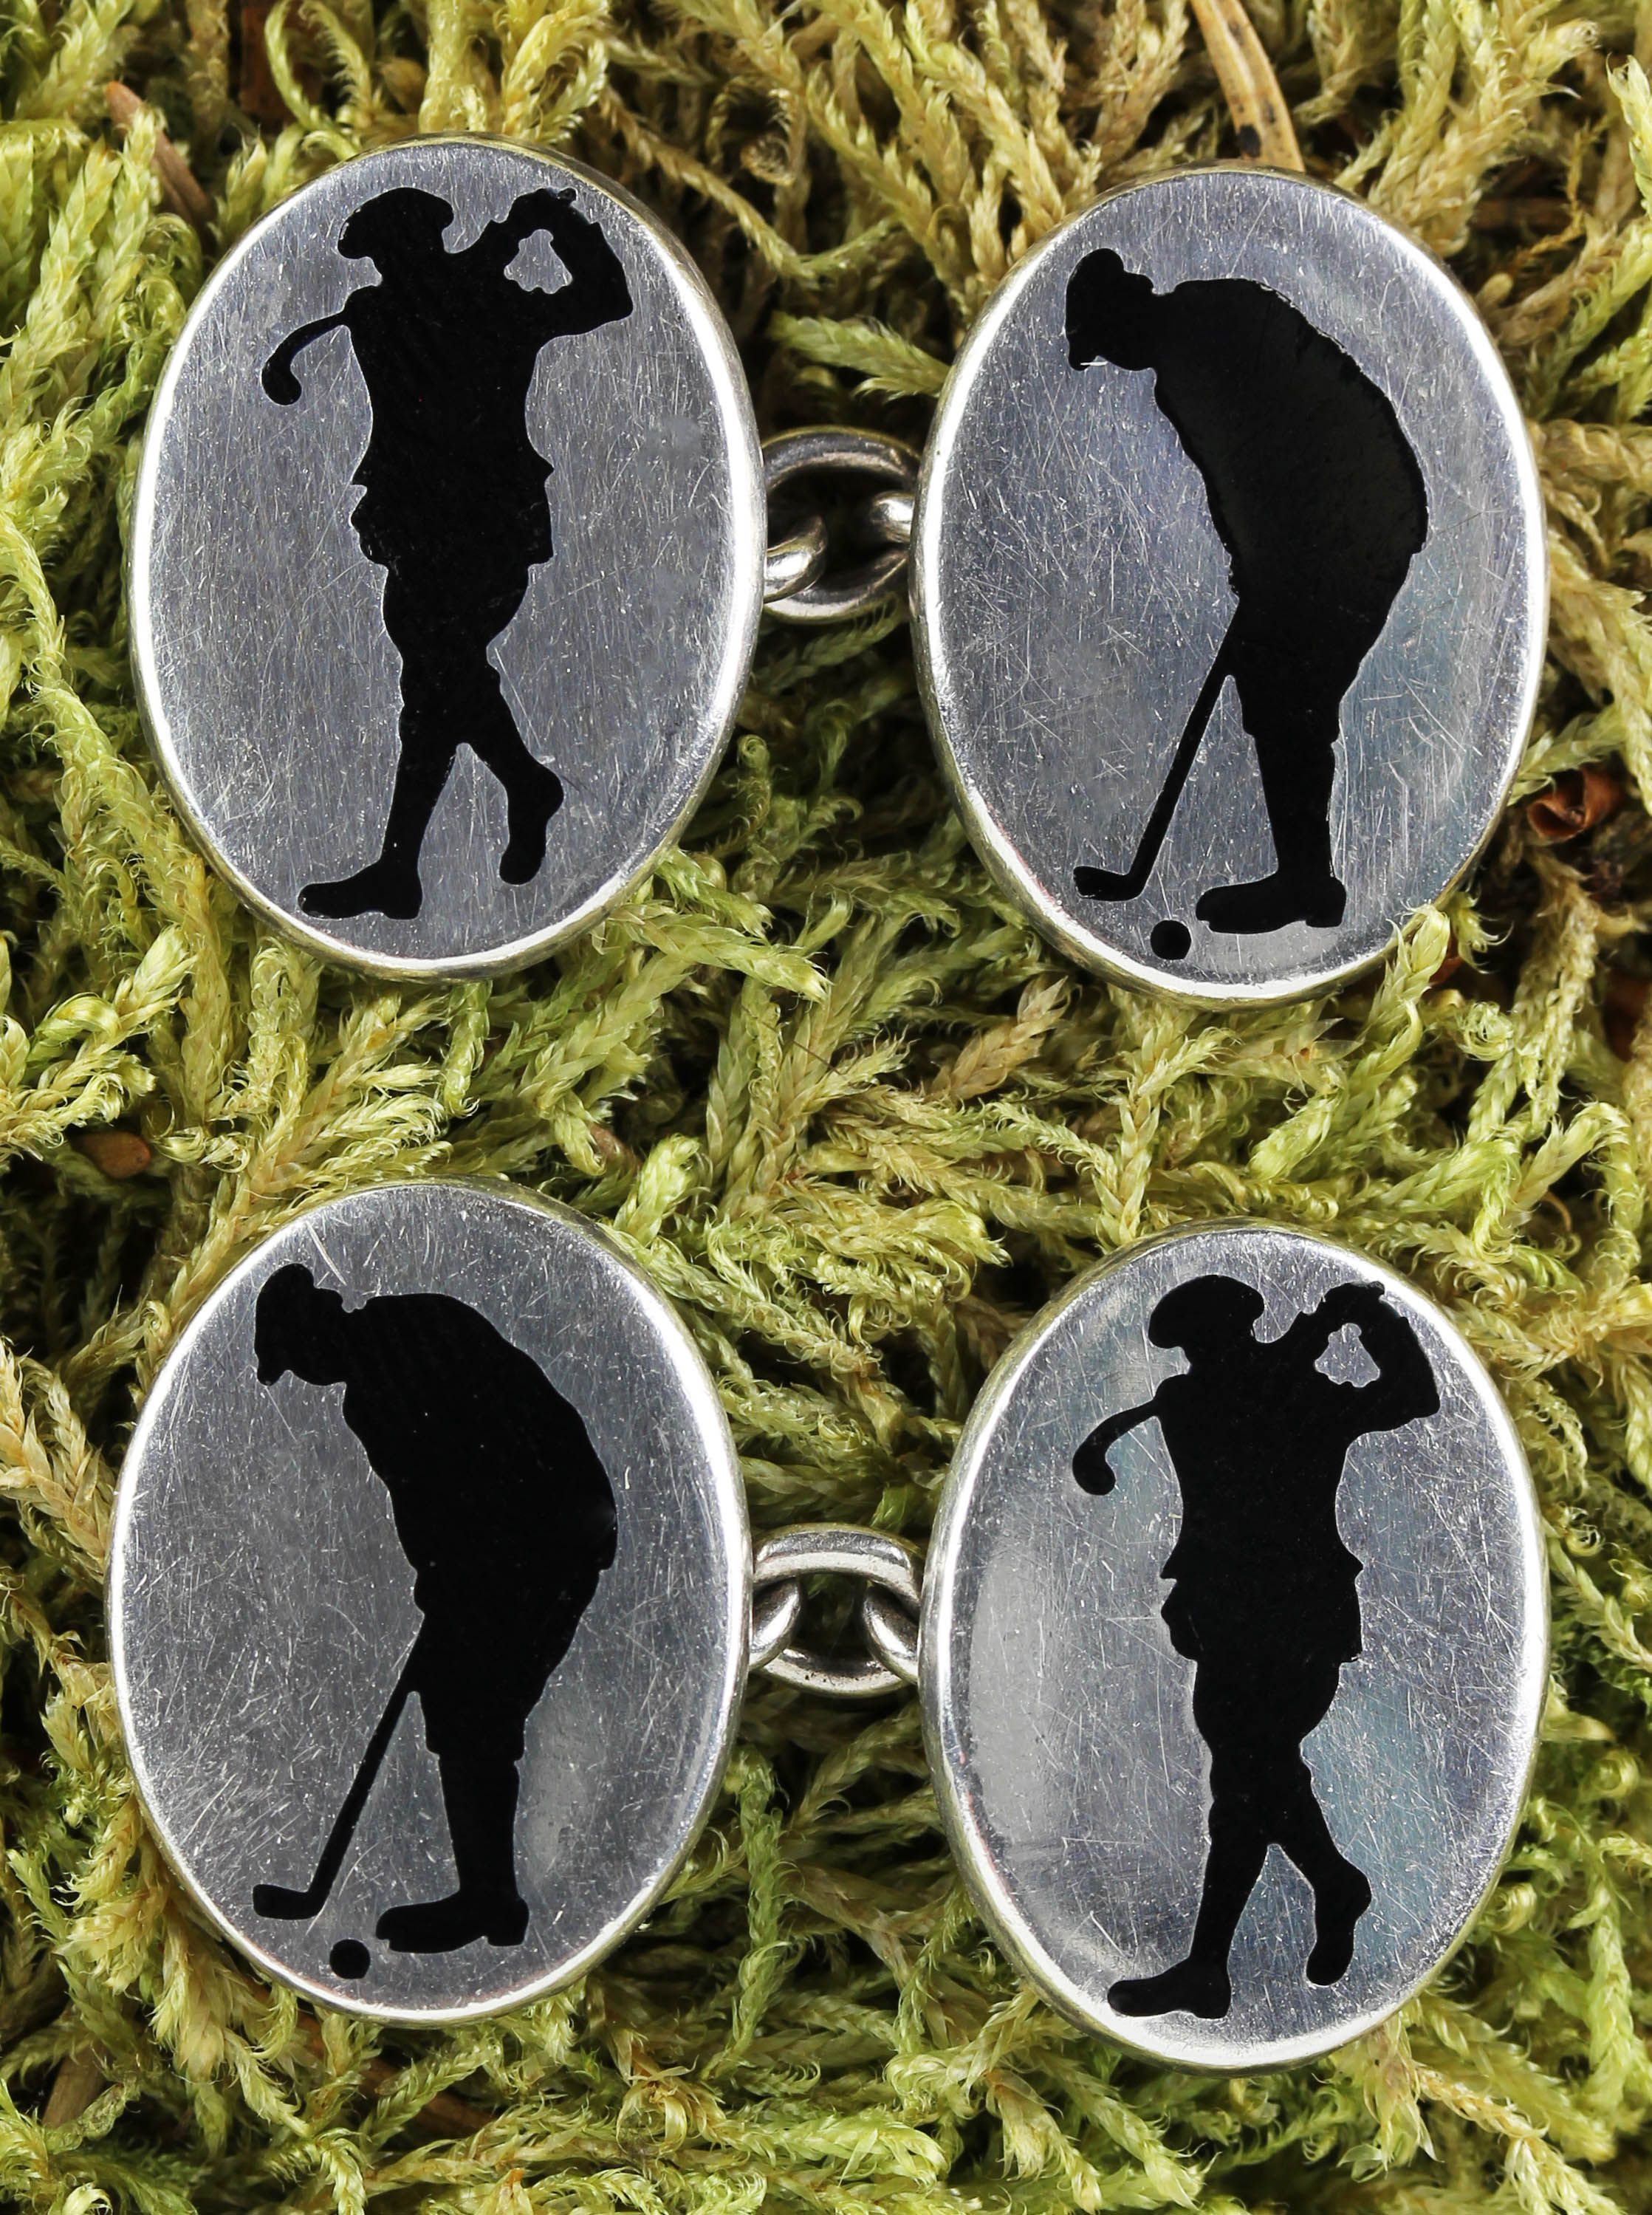 Cufflinks with golf player in Sterling Silver made by  Deakin & Francis